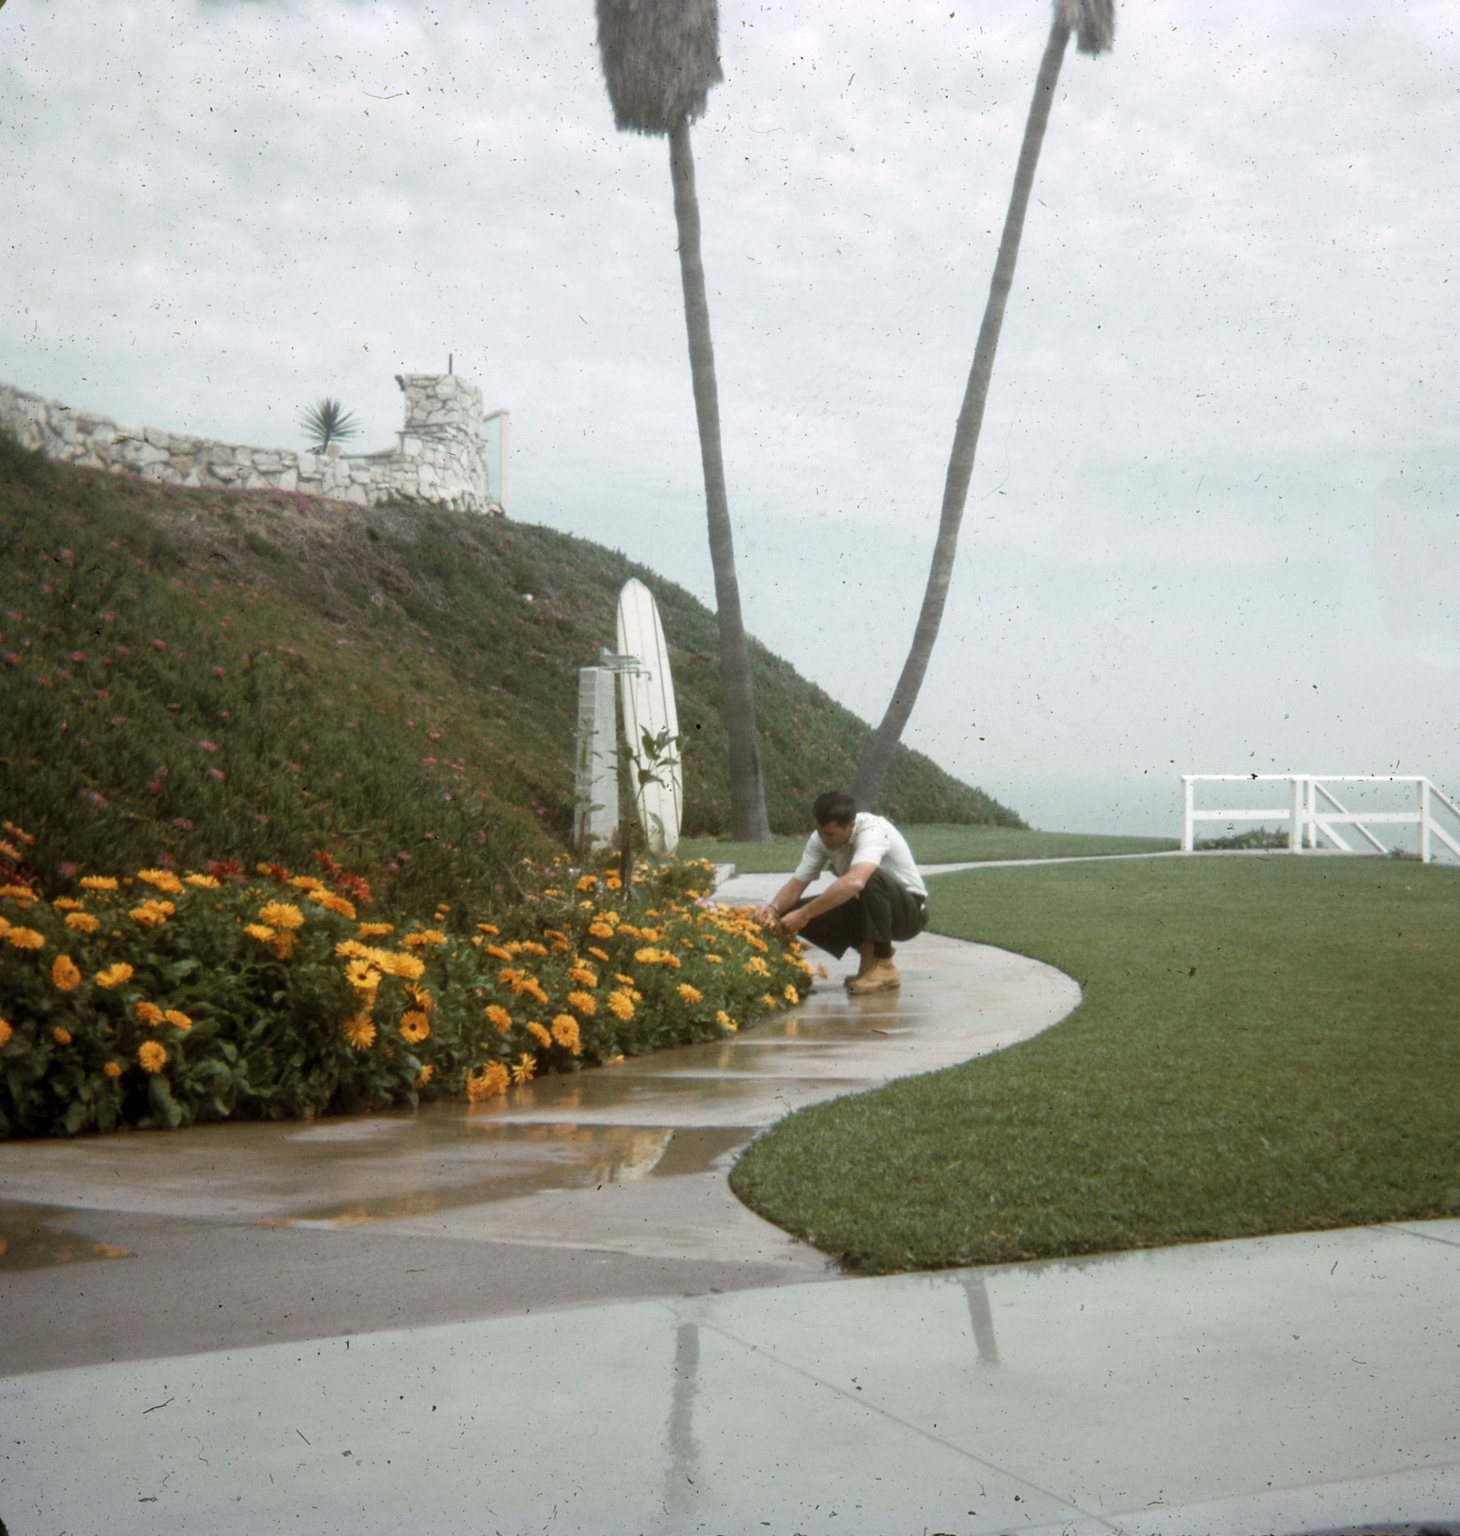 A man tending to a flowerbed at the Dana Strand Club.  In the background a surfboard is propped up against a show near stairs leading to the beach.